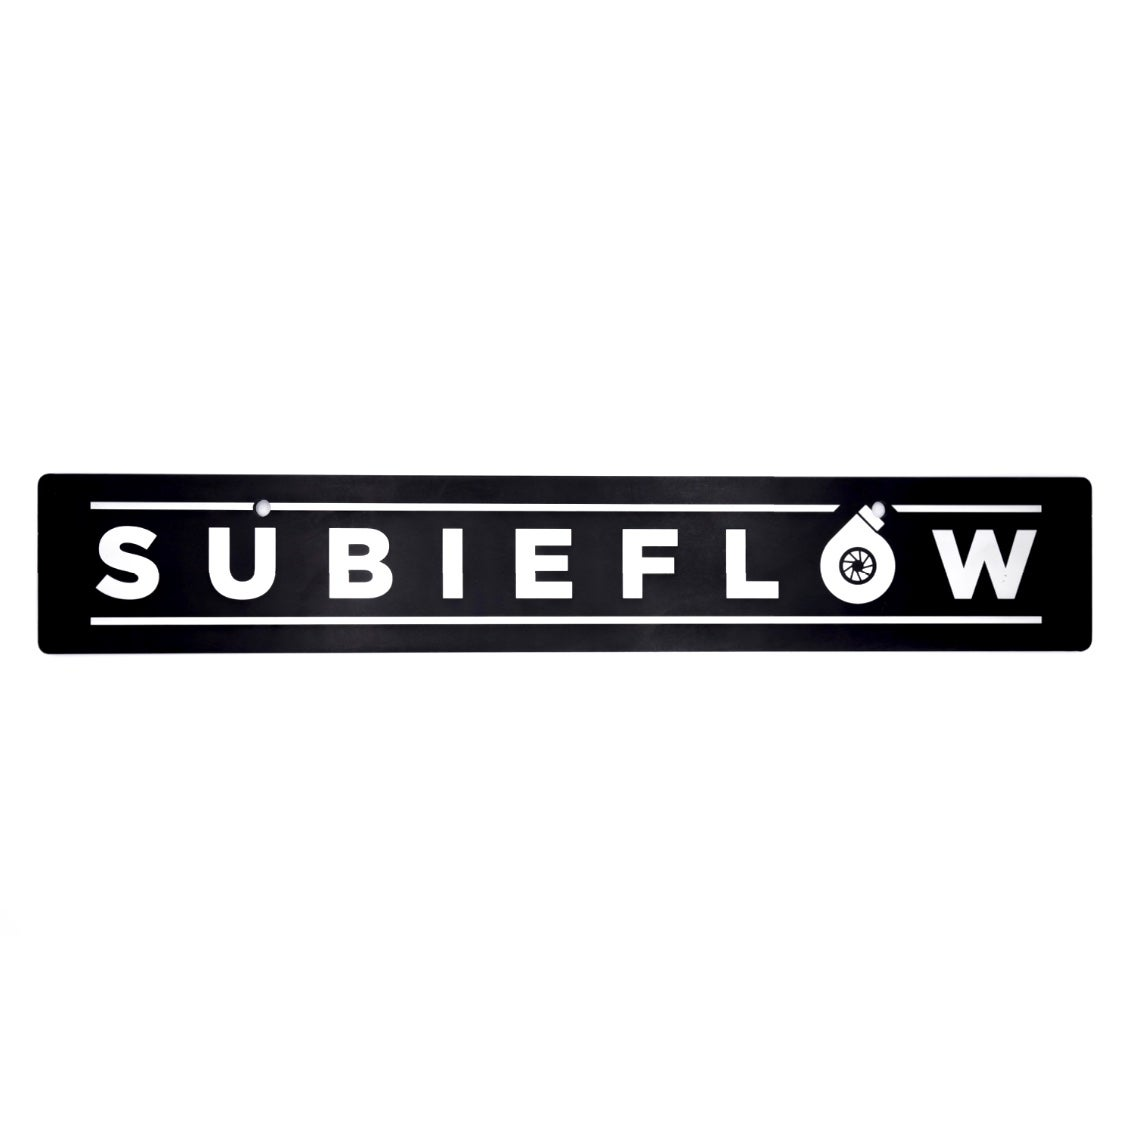 Image of SubieFlow License Plate Deletes